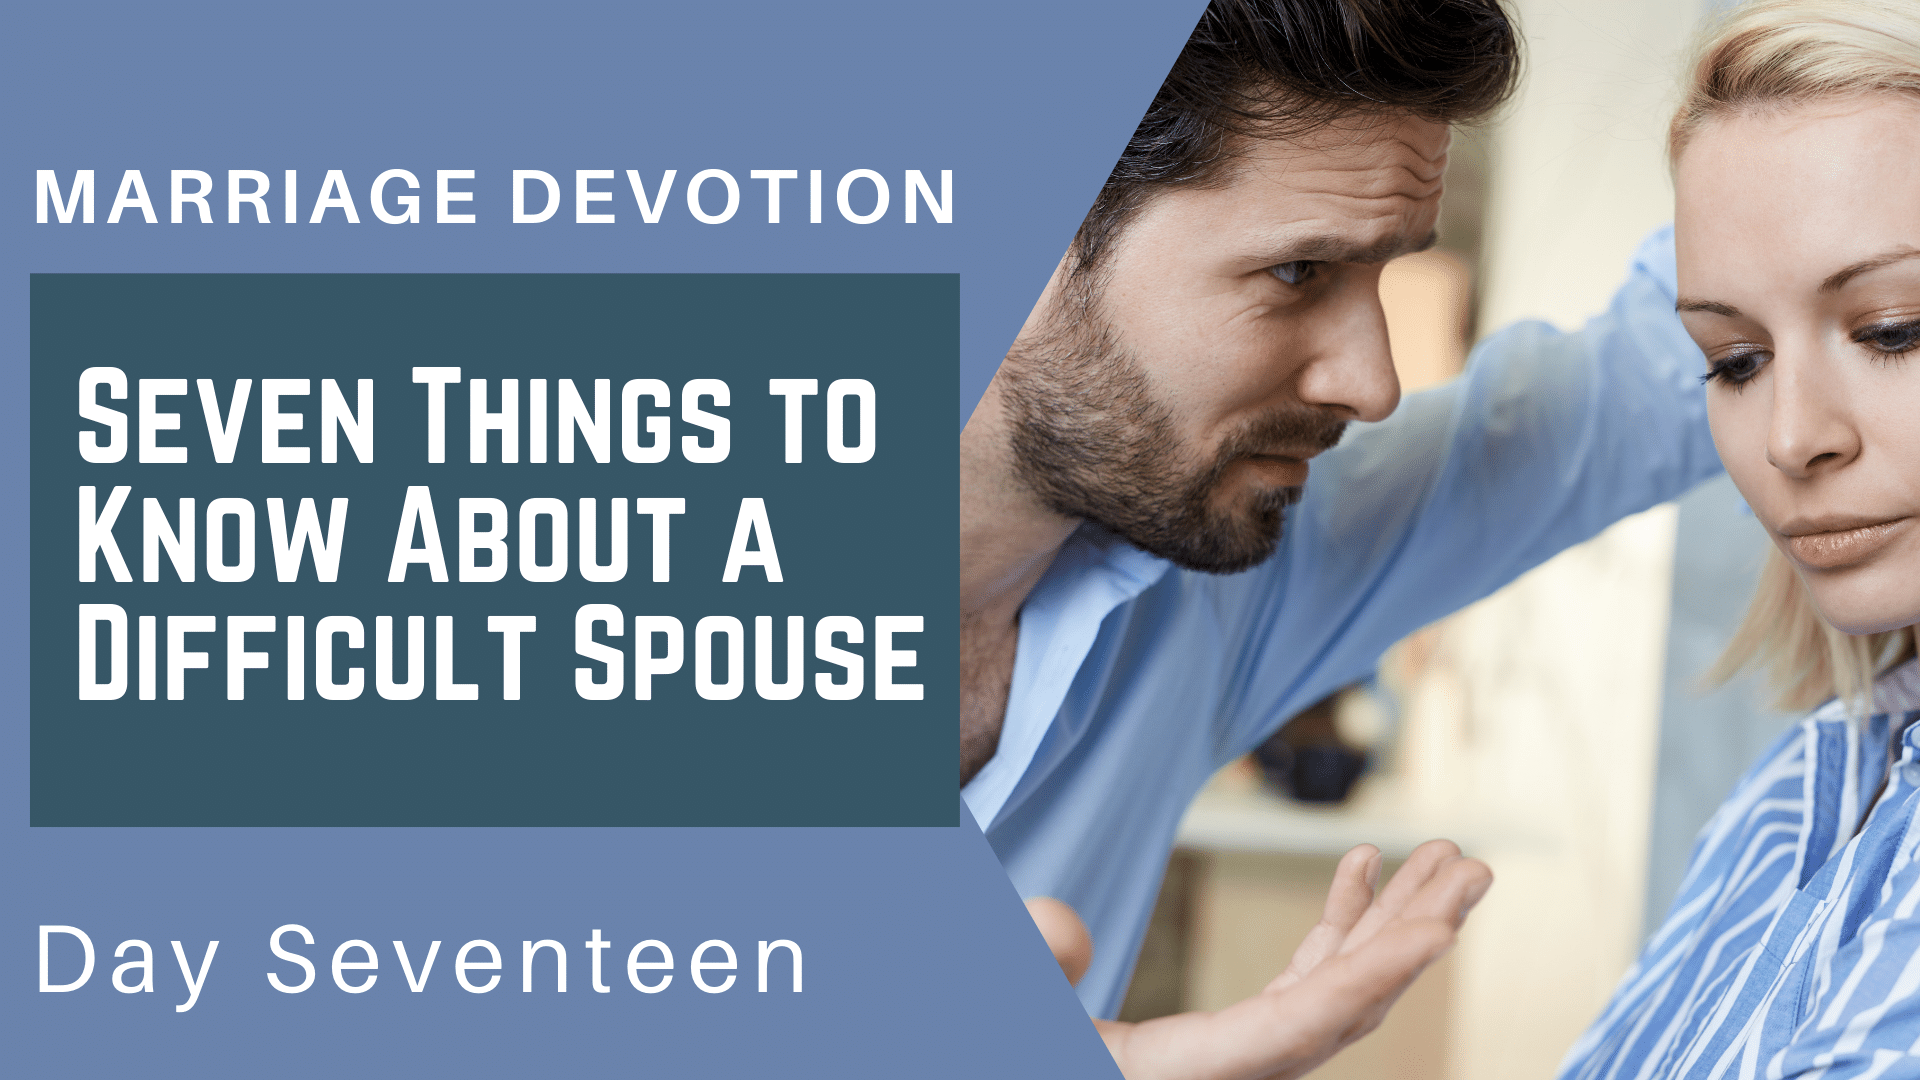 Marriage Devotion Day 17 – Seven Things to Know About a Difficult Spouse